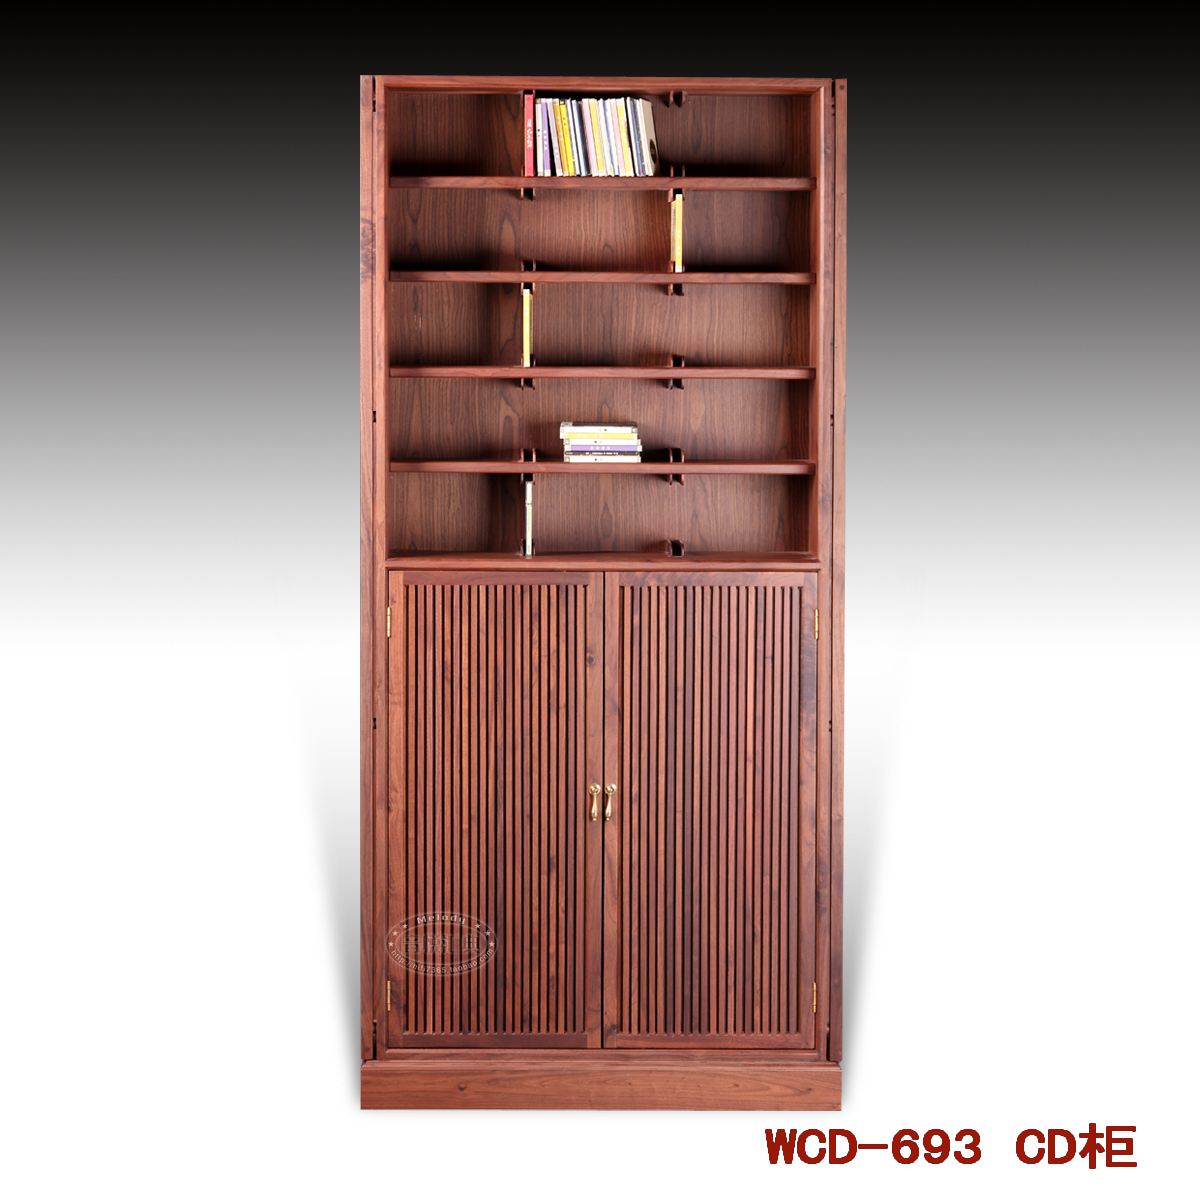 Yue Yuet Collection Wcd 693 Diffused Solid Wood Cd Cabinet Dvd Storage Record